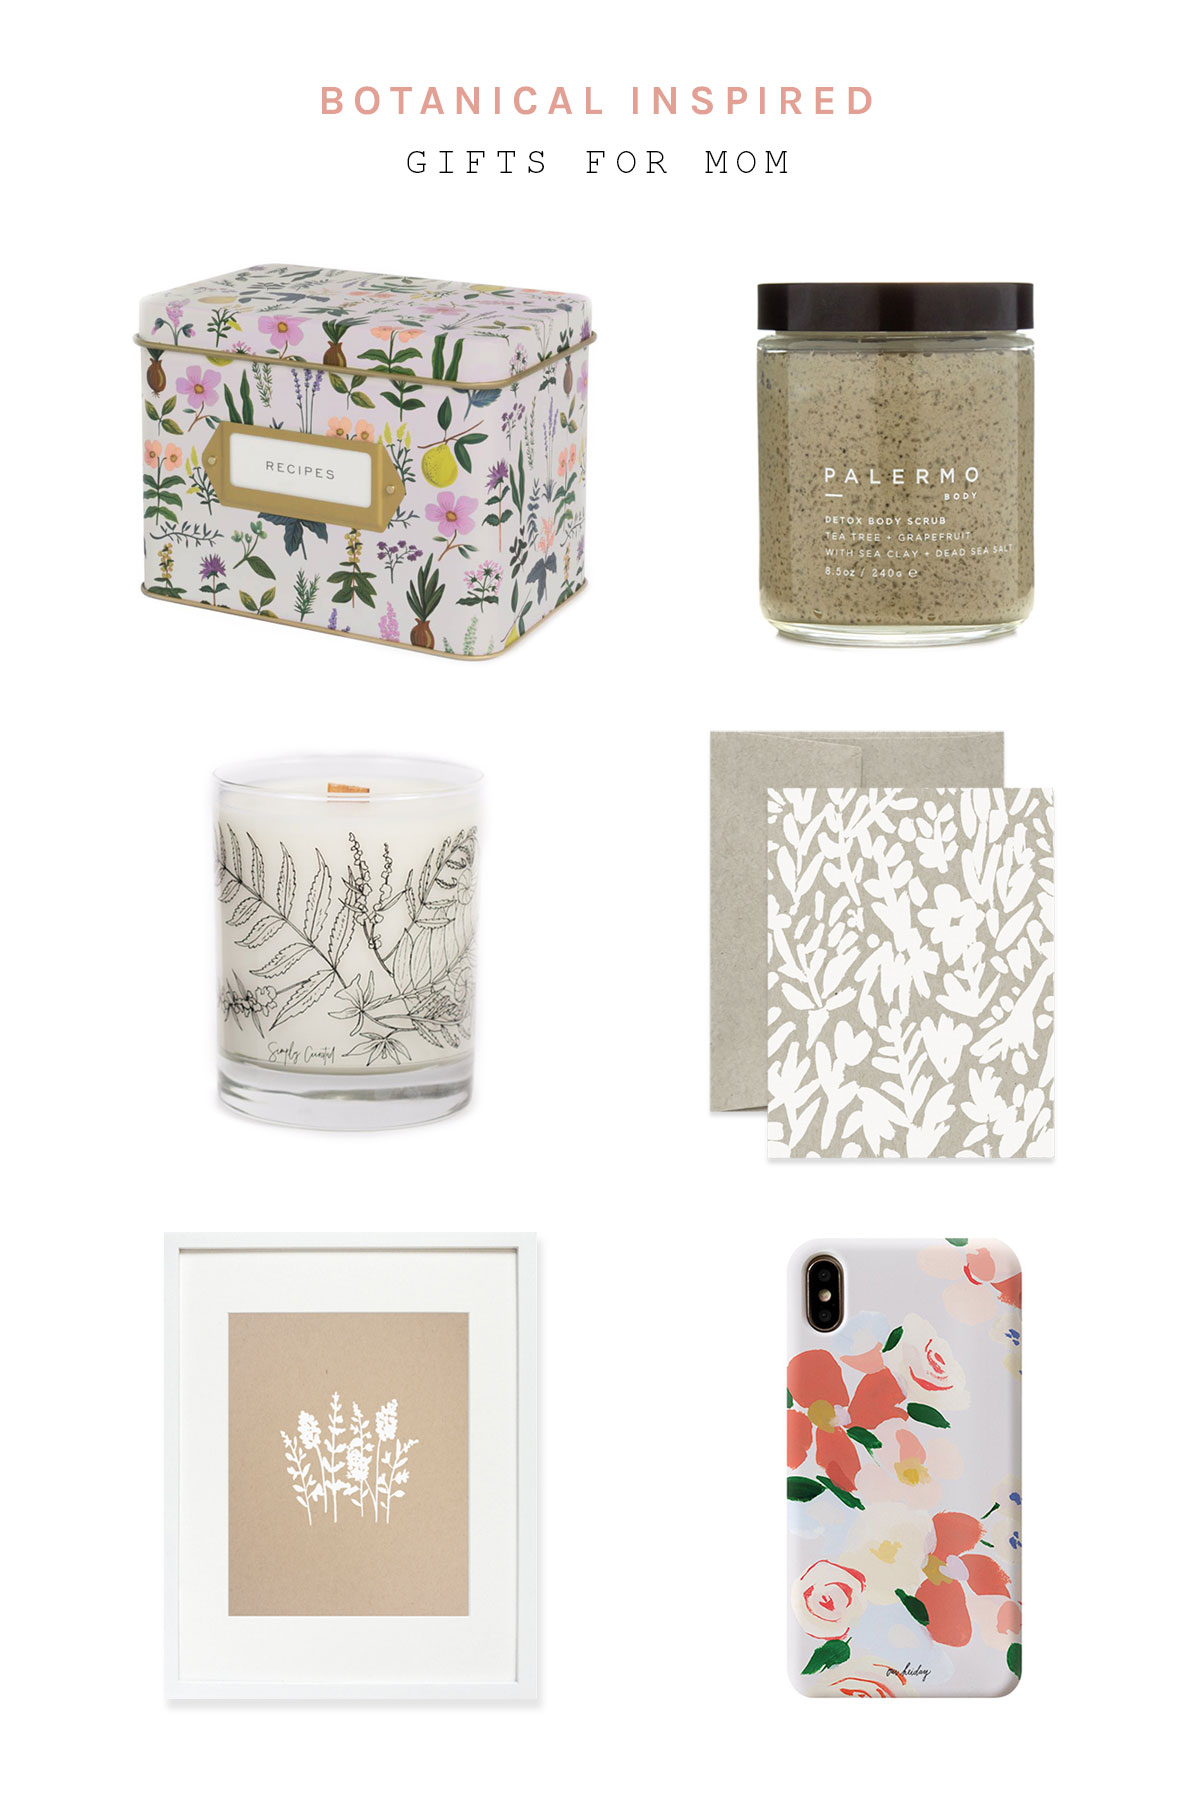 Botanical Inspired Gifts For Mom